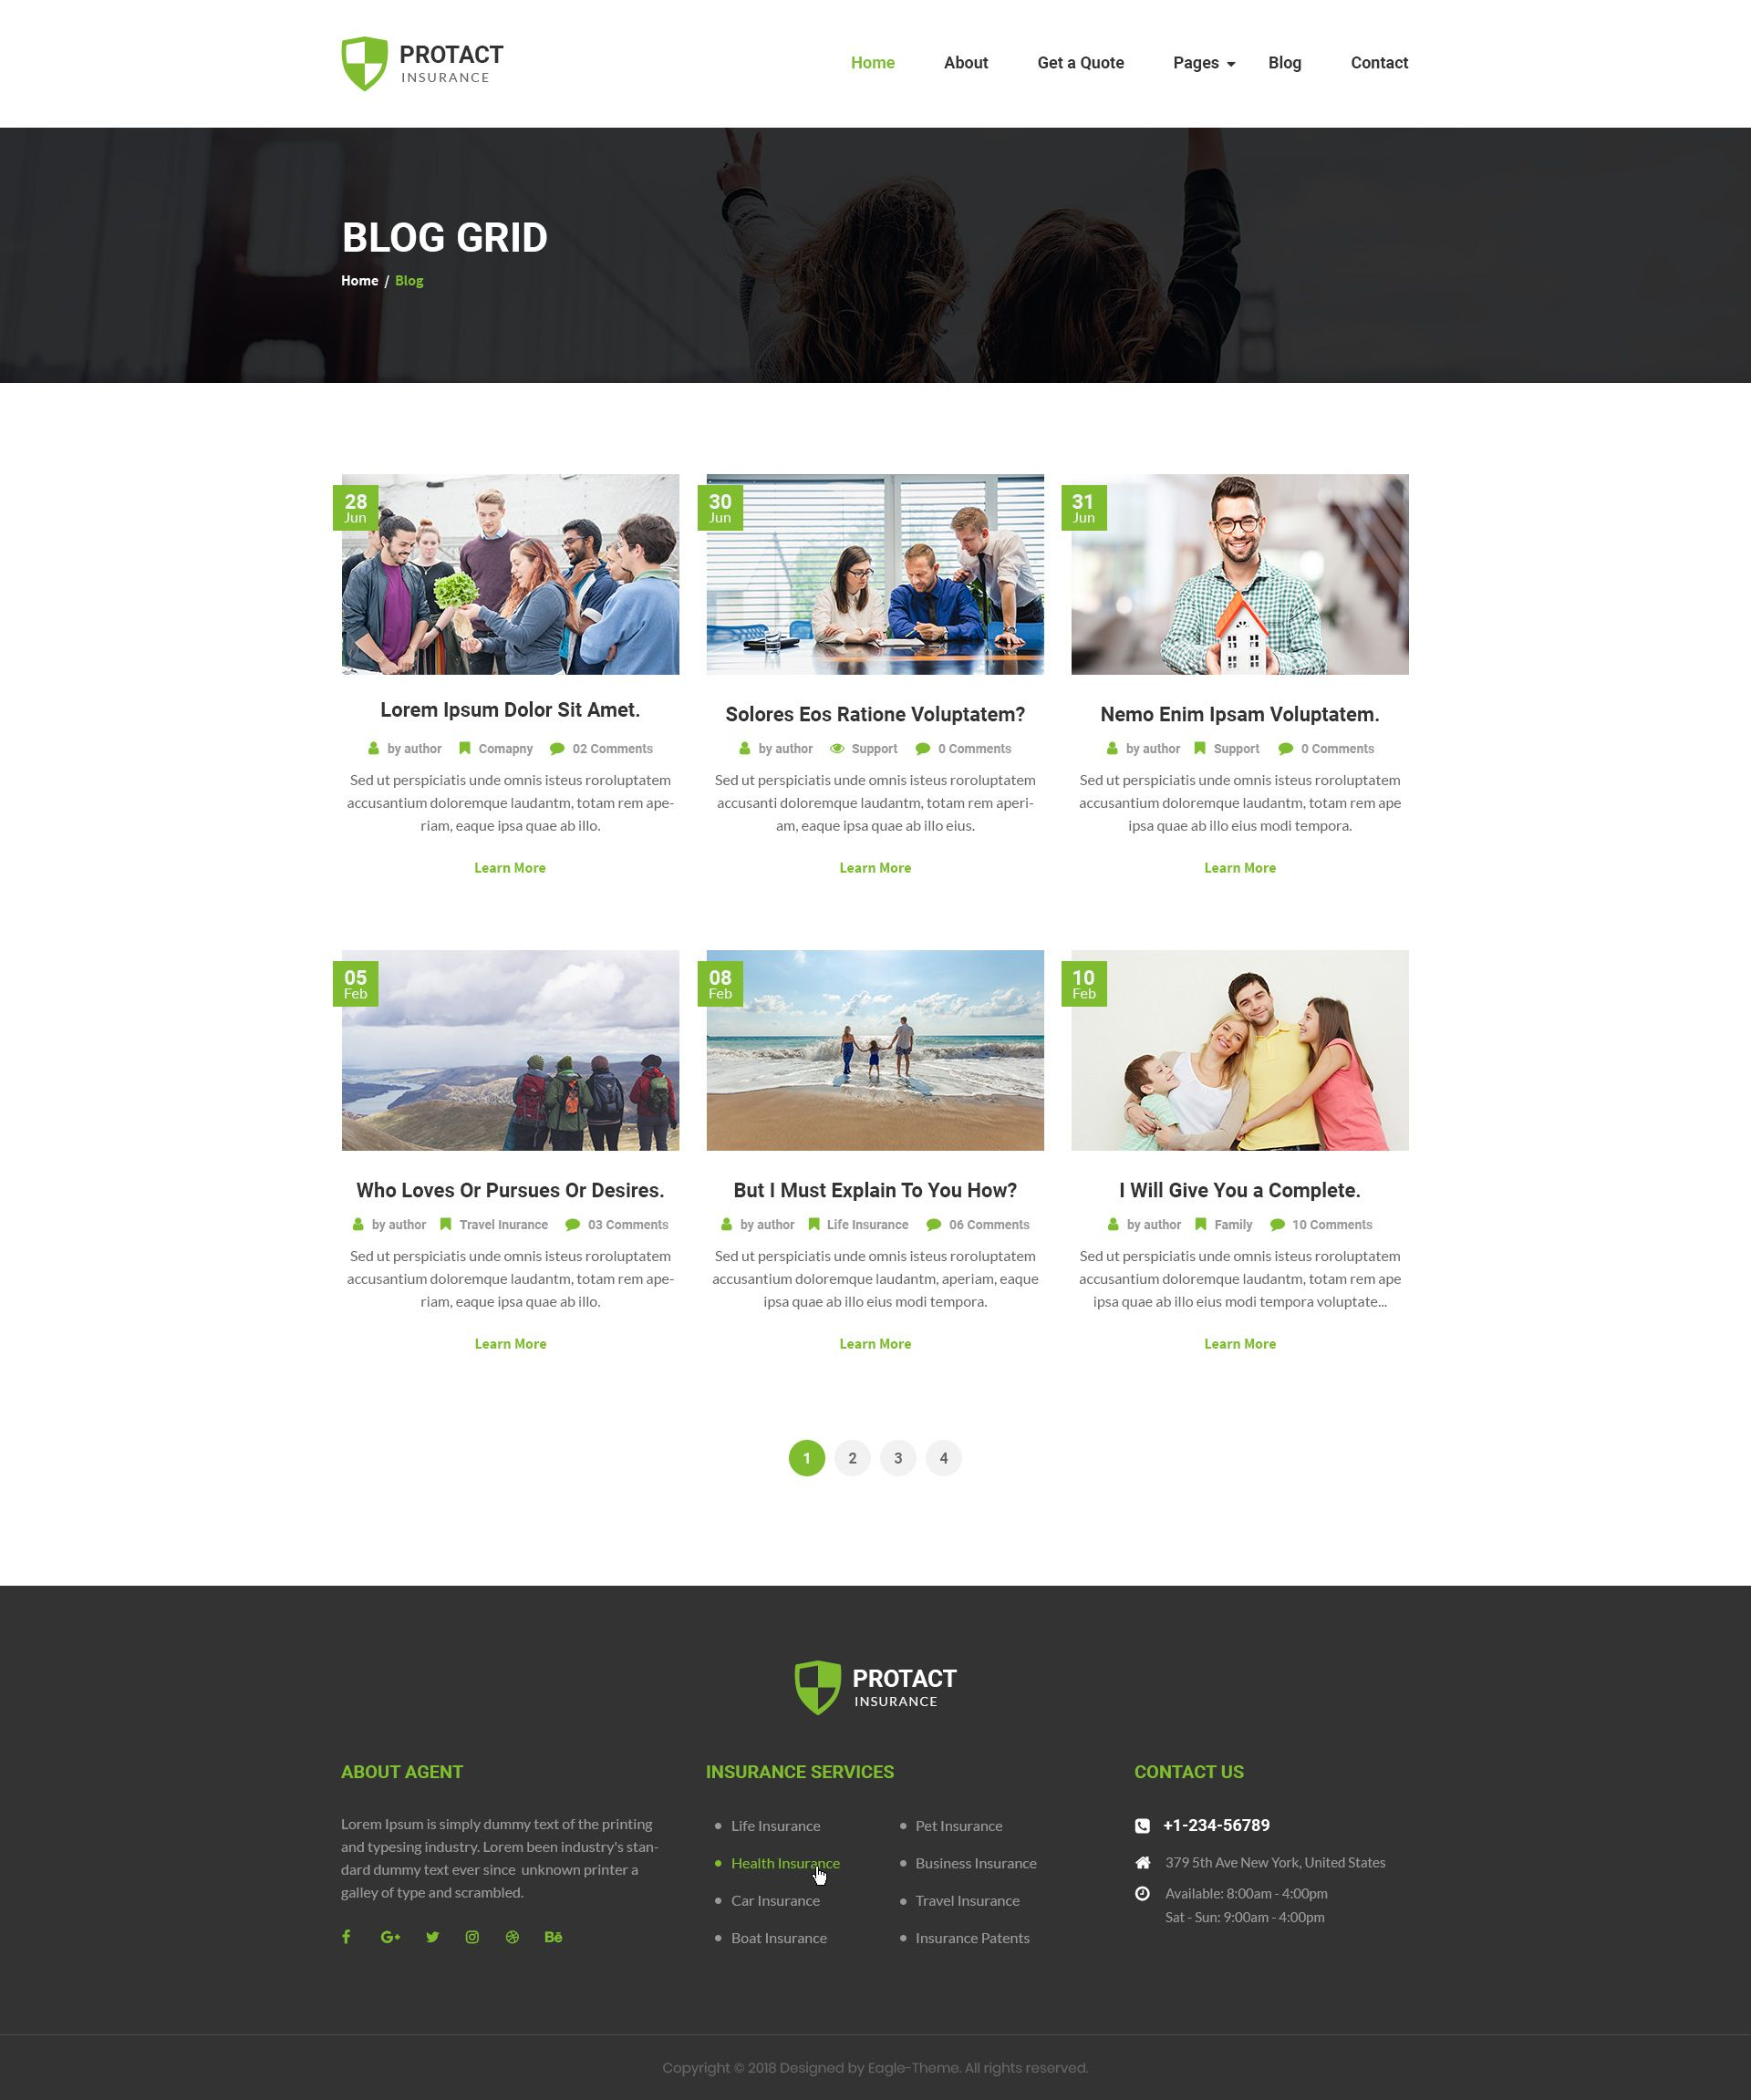 Protact Insurance Agency Business Psd Template With Images Insurance Agency Insurance